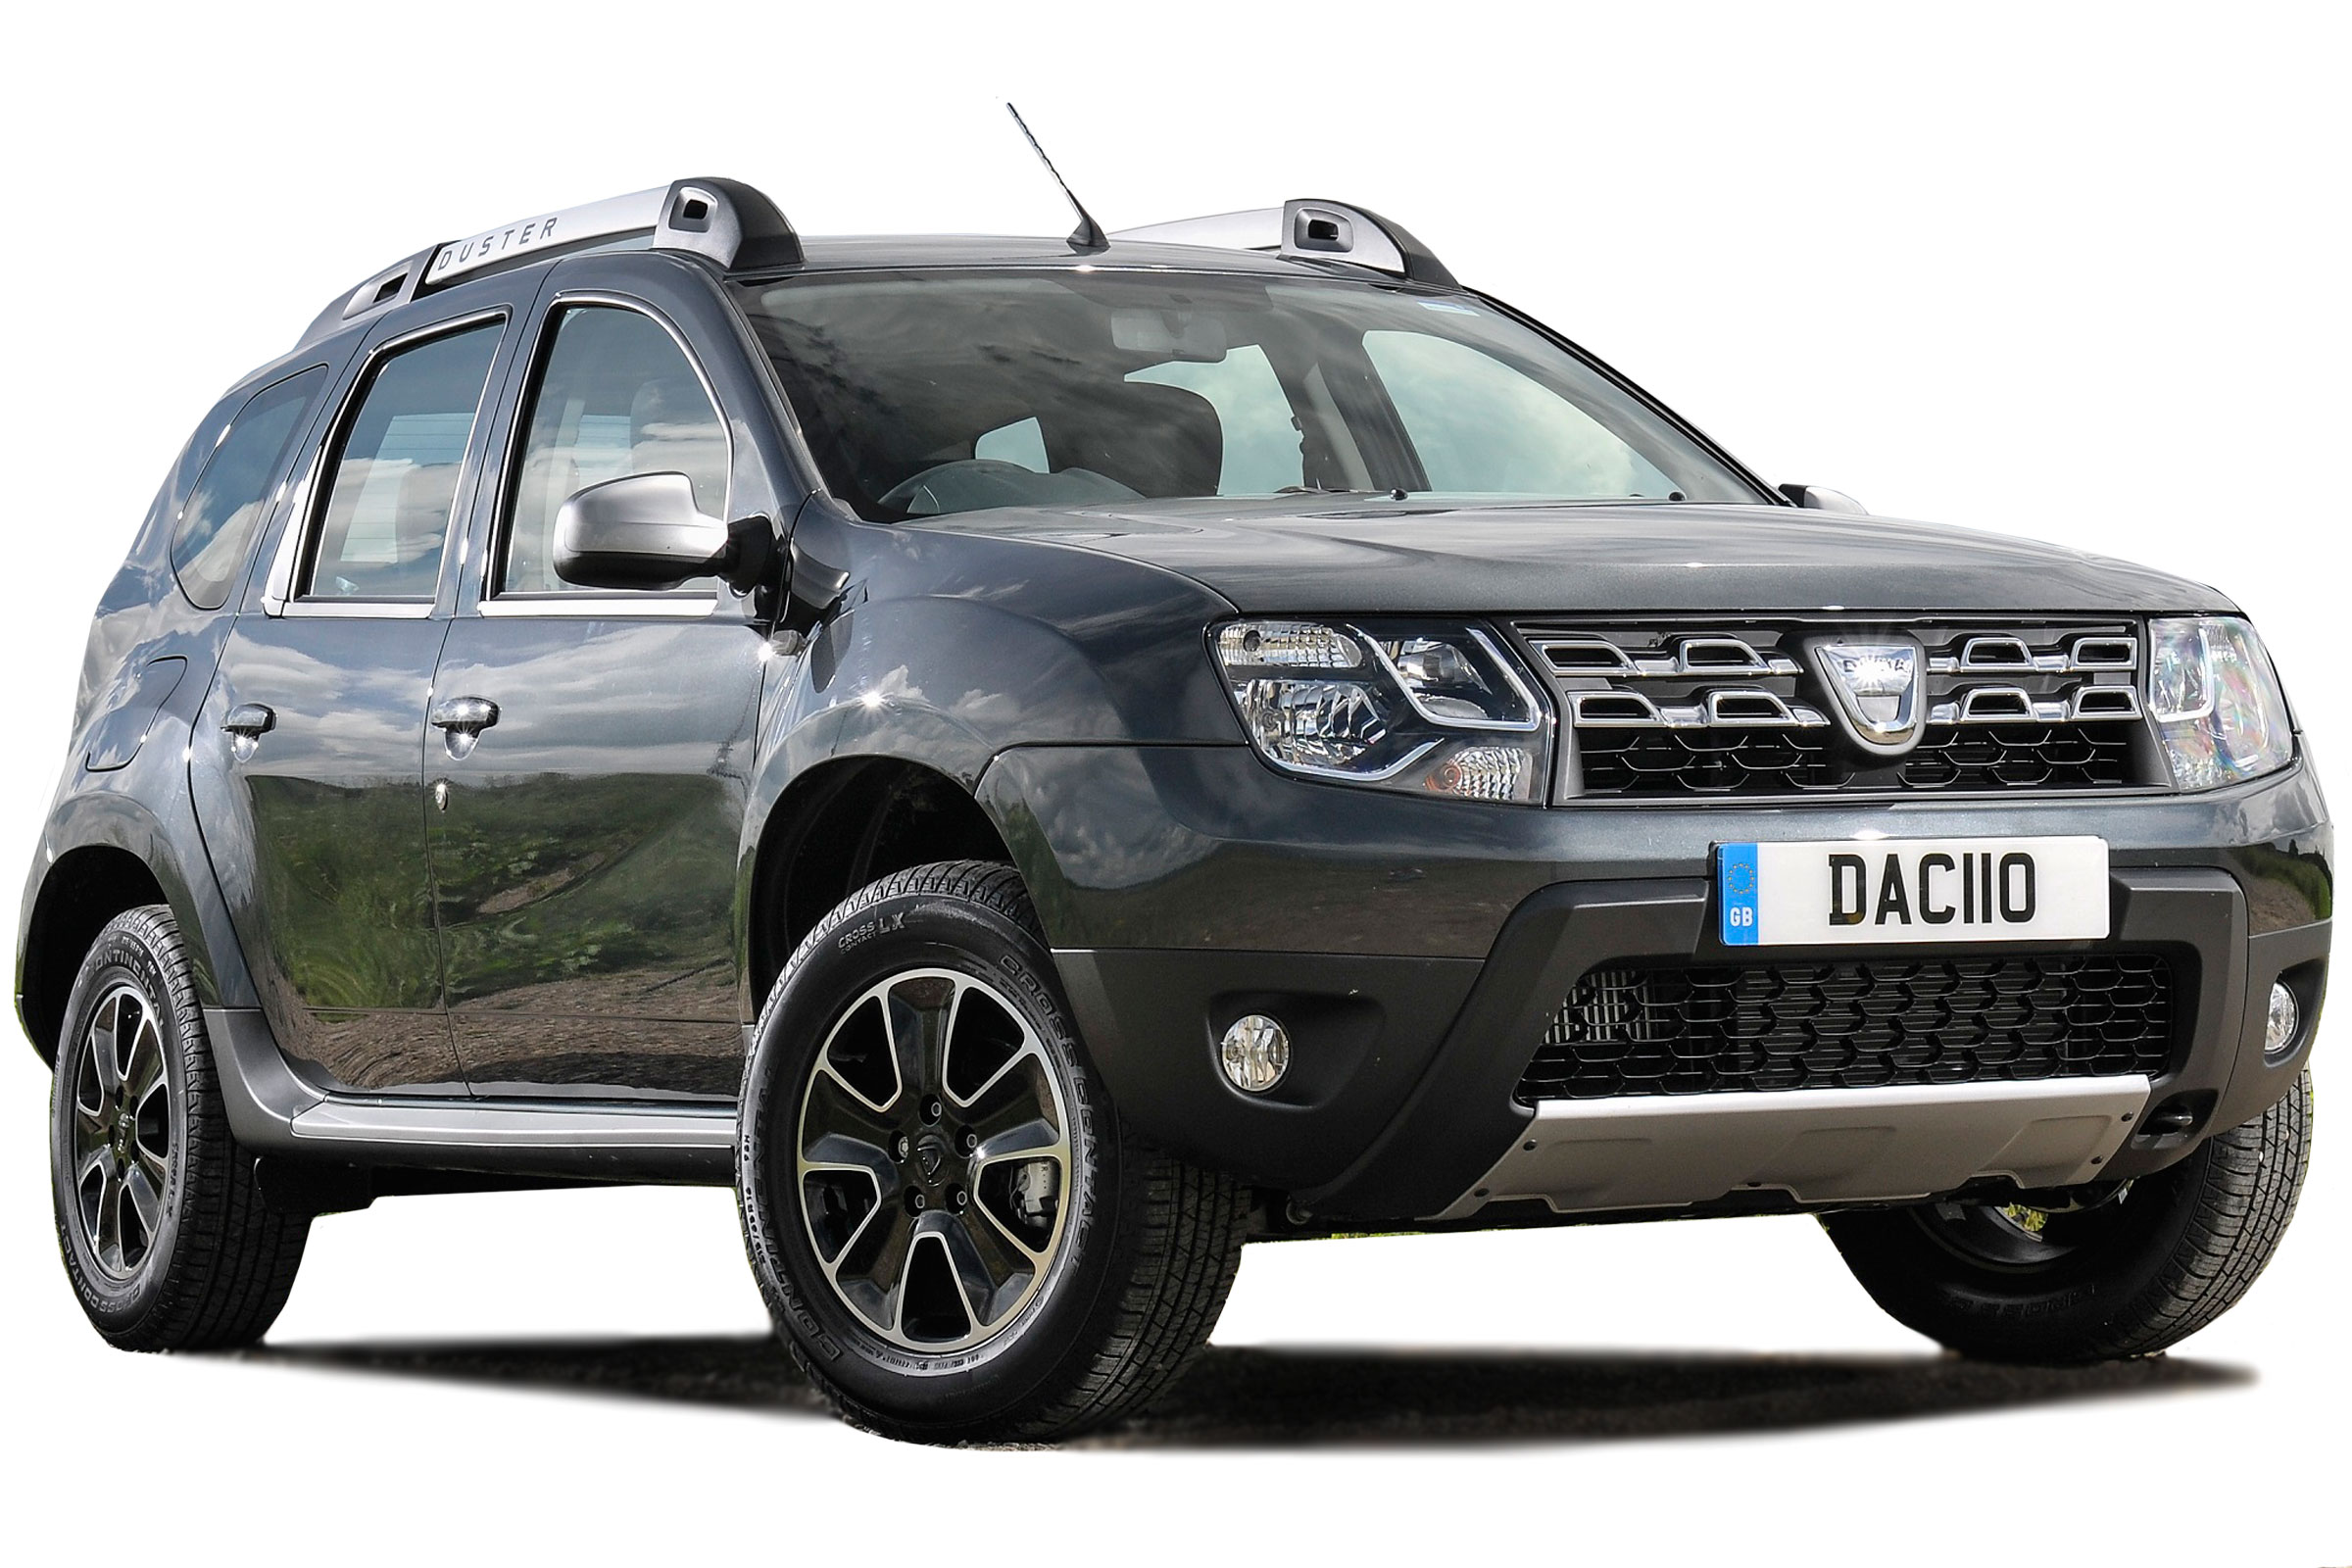 Dacia Duster Suv 2012 2018 Reliability Safety Carbuyer